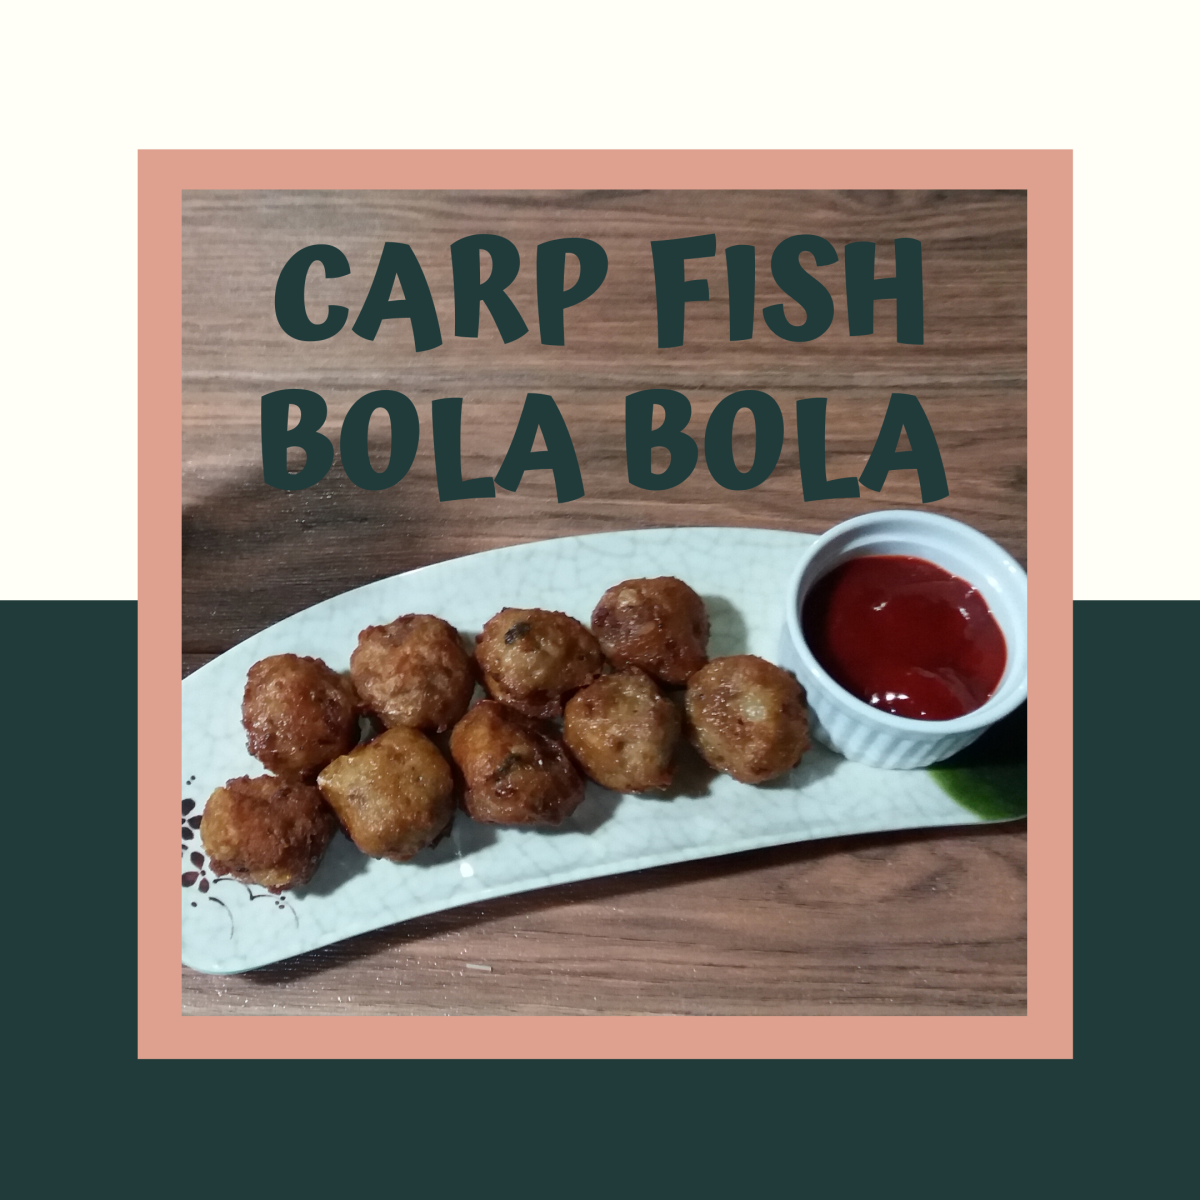 How to Cook Filipino-Style Carp Fish Bola Bola